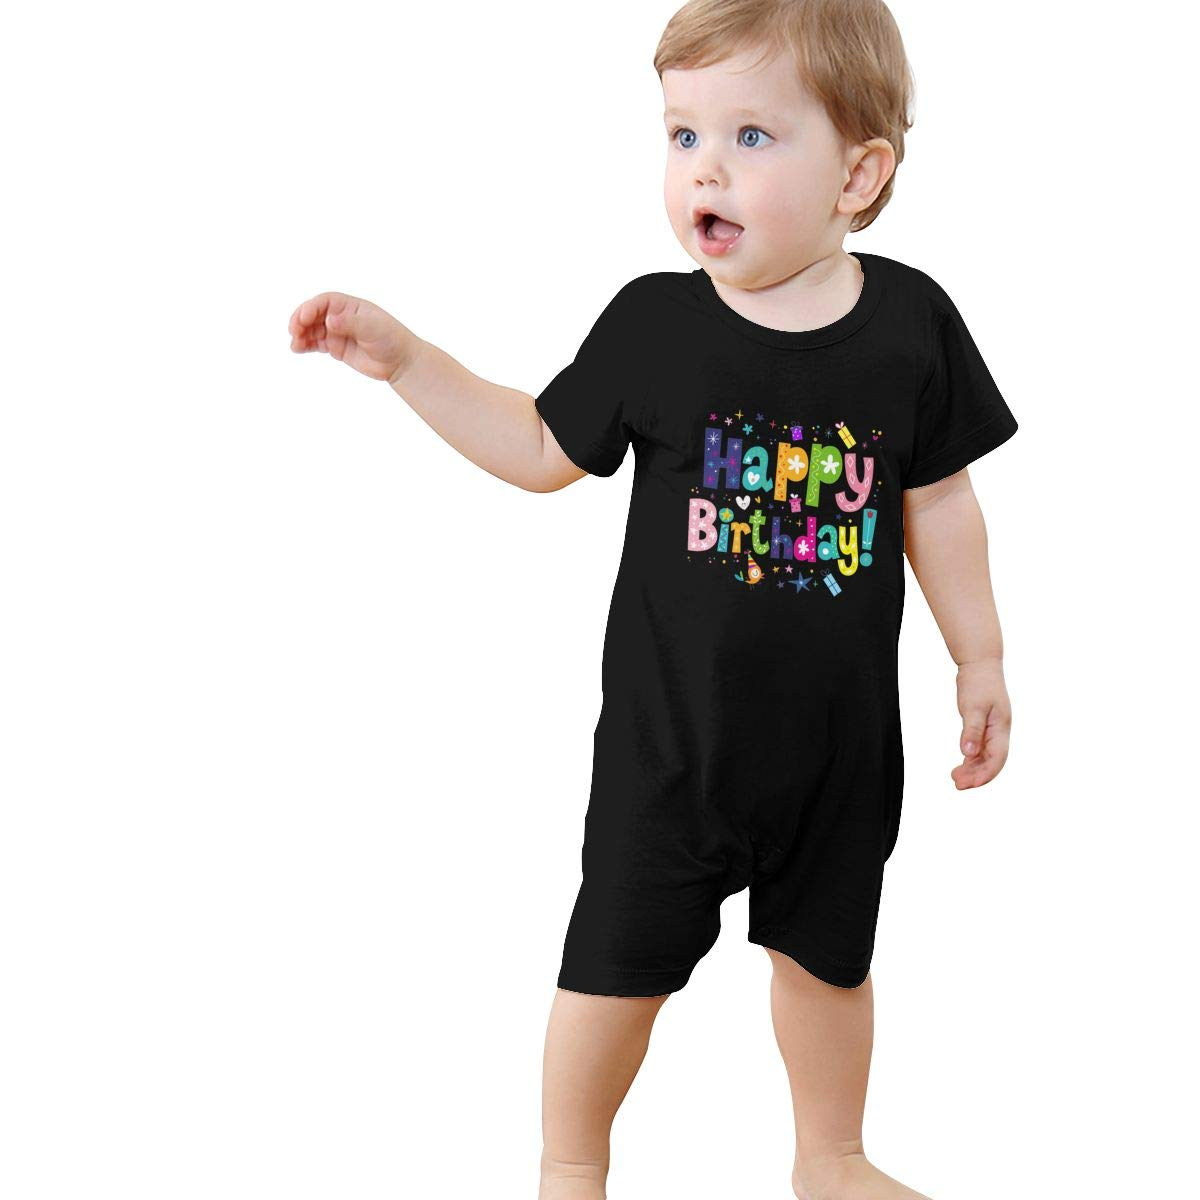 Baby Boys Girls Romper Jumpsuit Cute Happy Birthday Newborn Short Sleeve Bodysuits Infant Outfit Funny Onesie for 0-2T